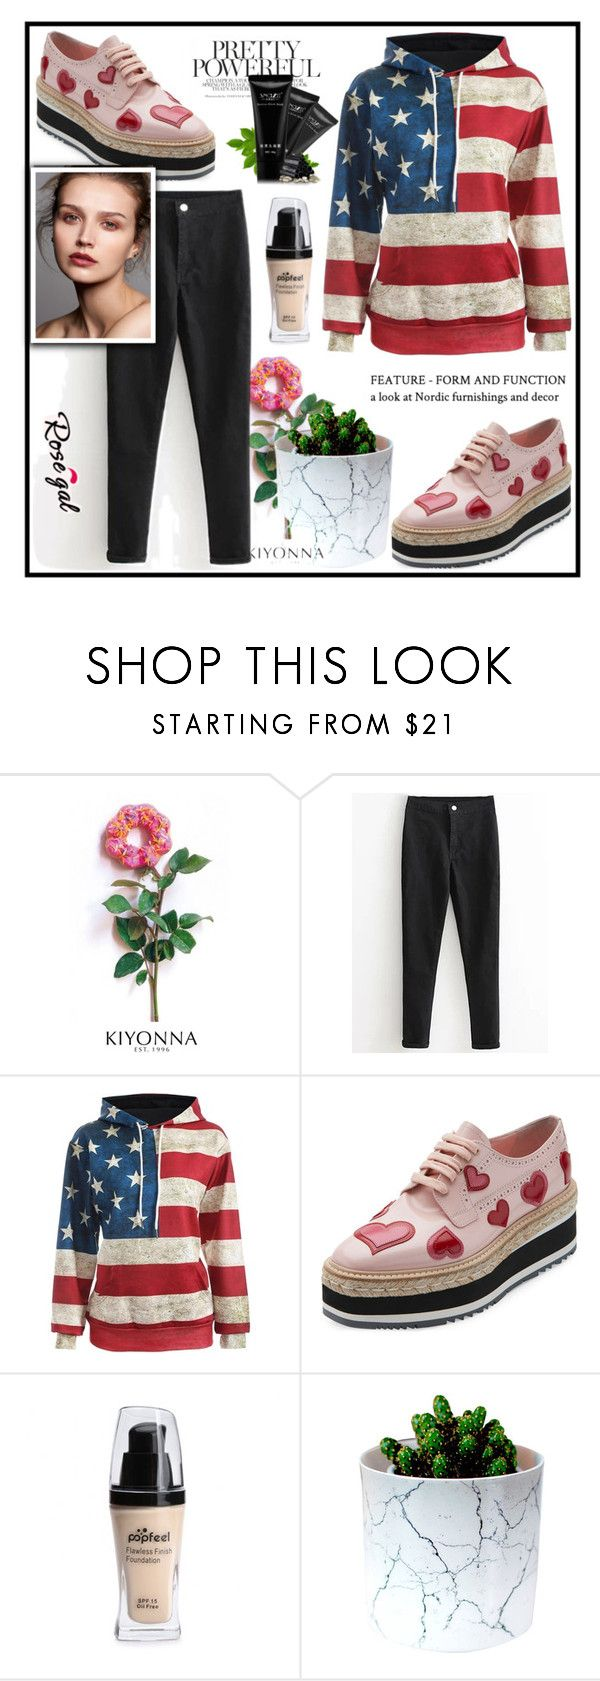 """Rosegal fashion"" by erina-salkic ❤ liked on Polyvore featuring Kiyonna, Prada, fashionset, freeshipping and rosegal"